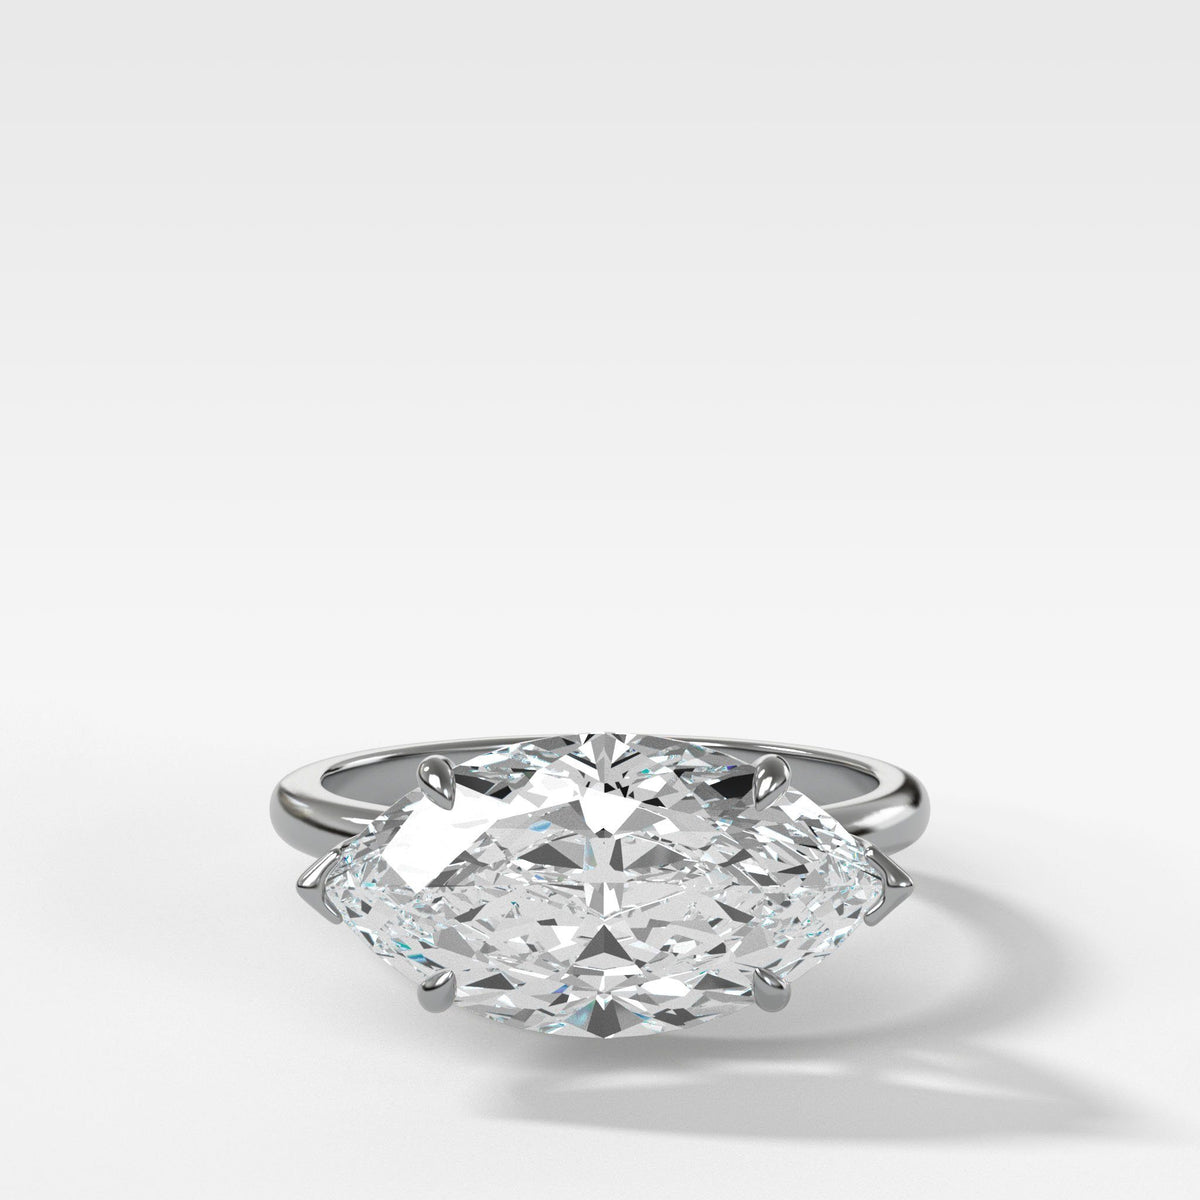 Crescent Solitaire With Marquise Cut in White Gold by Good Stone